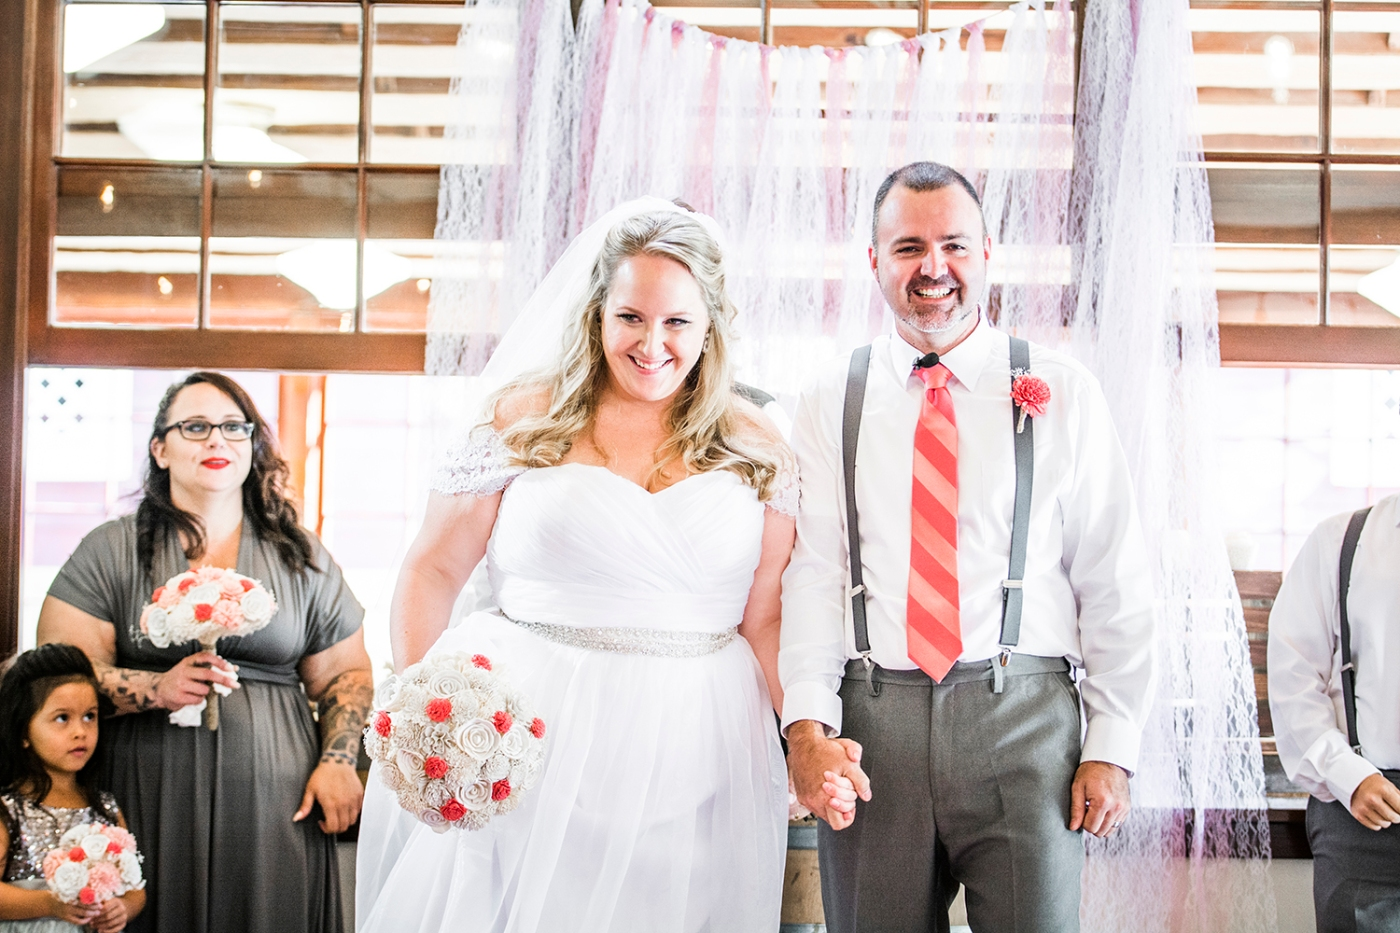 Jane_S_photography_Katie_and_Steve_2016_Des_Moines_Marina_Wedding_JS7_9360